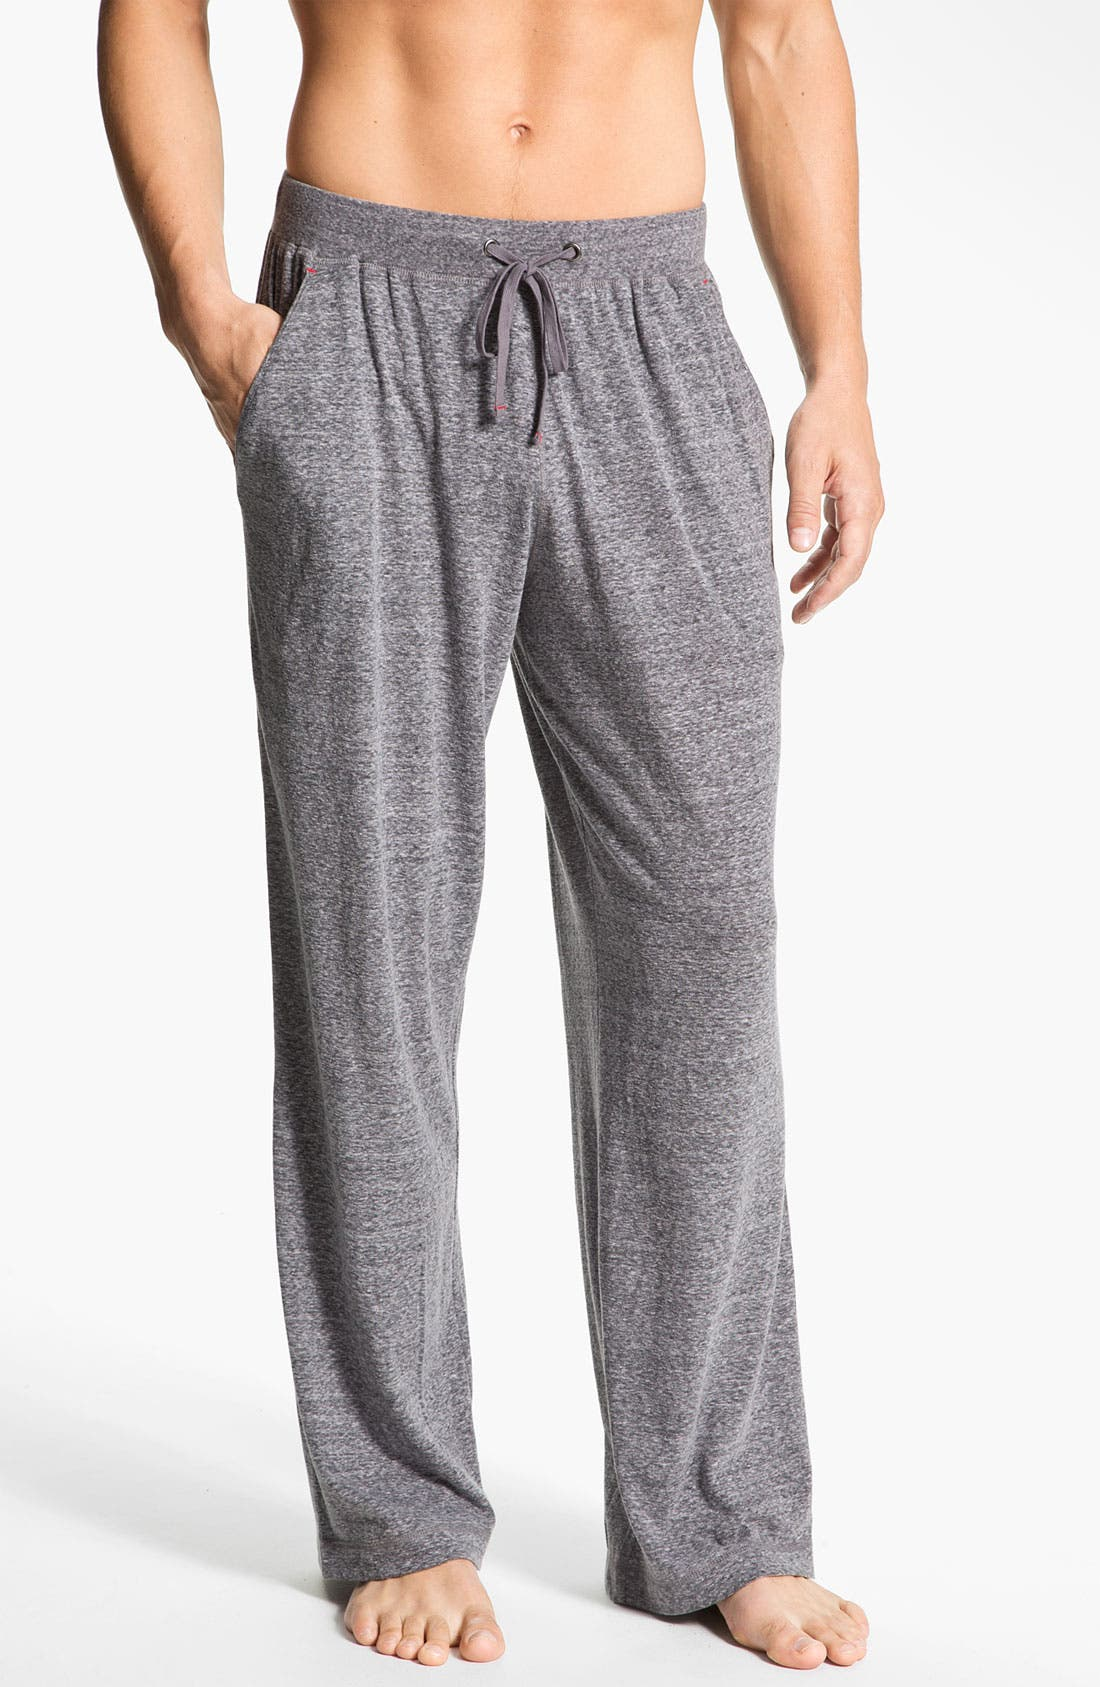 Main Image - Daniel Buchler Lightweight Heathered Cotton Blend Lounge Pants